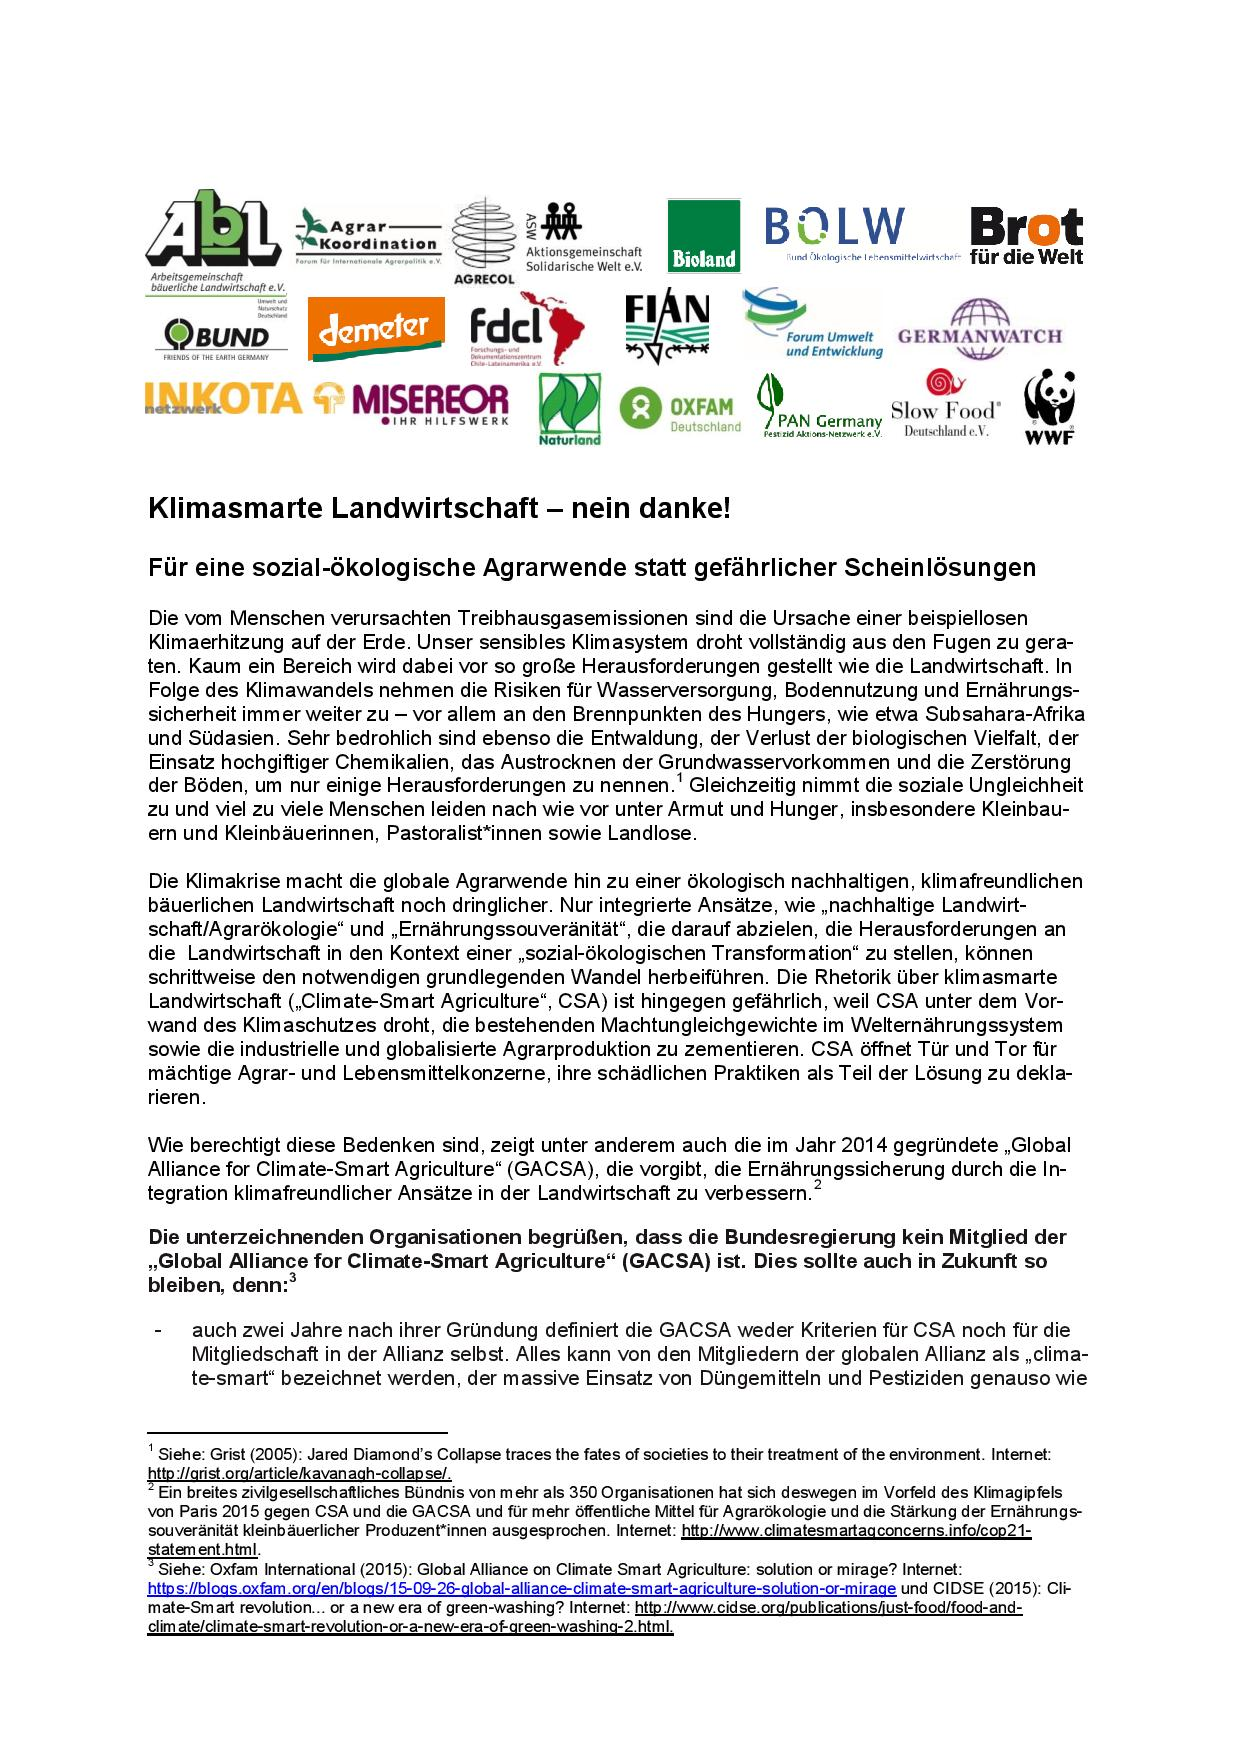 NGO_Positionspapier_Climate Smart Agriculture_070616_final-page-001-1